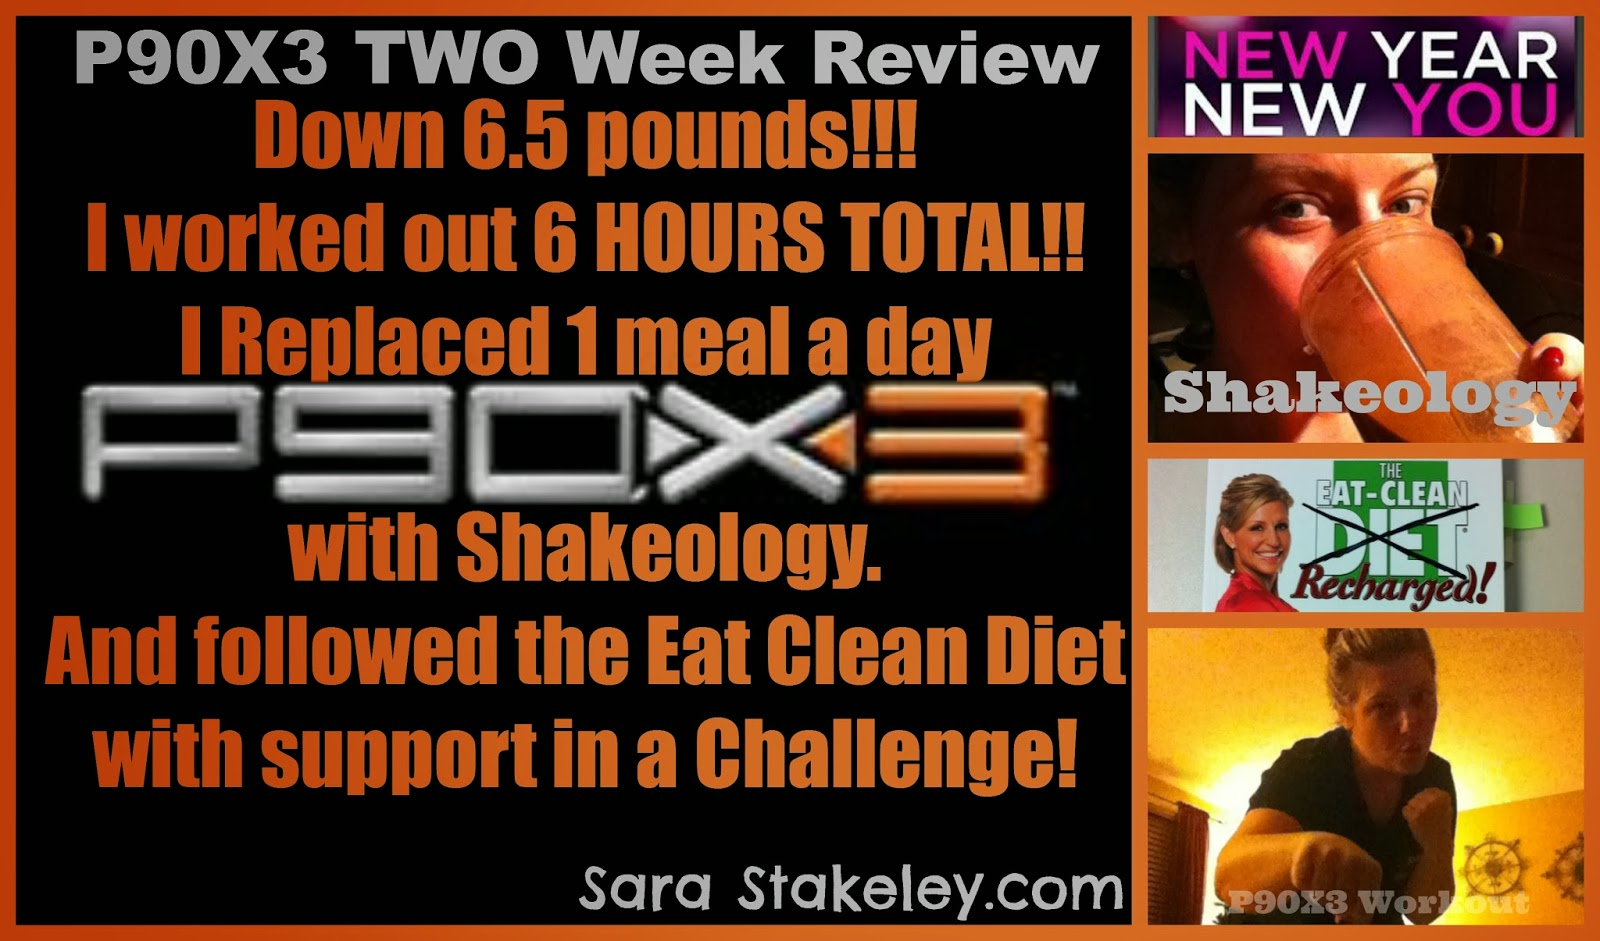 Sara Stakeley P90x3 Two Week Review